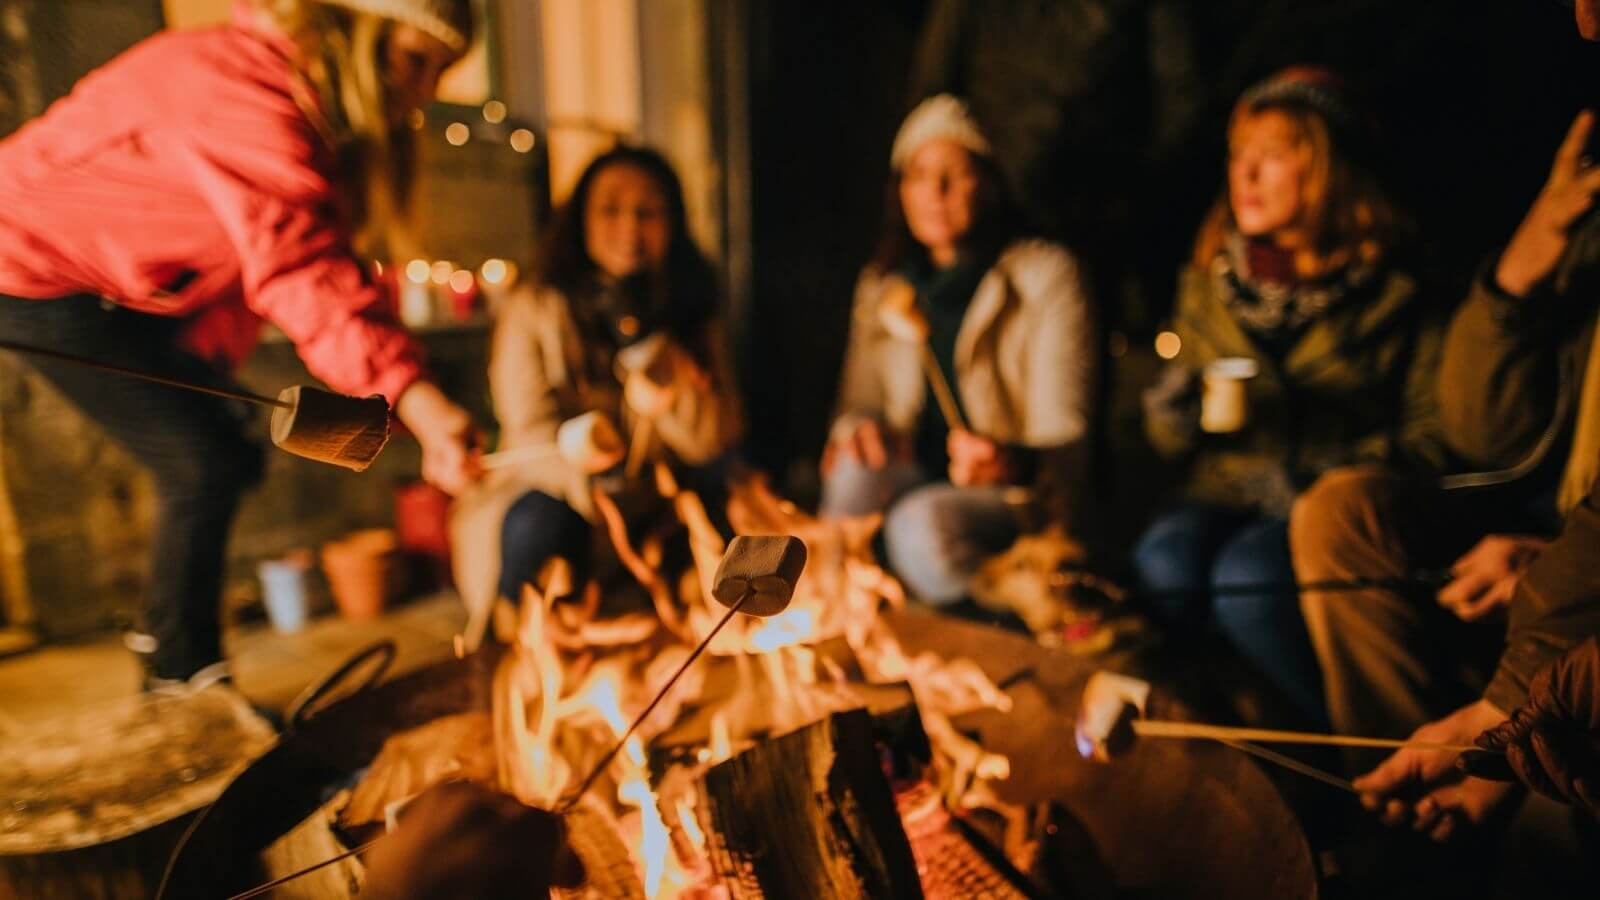 Group of people toasting marshmallows around a firepit